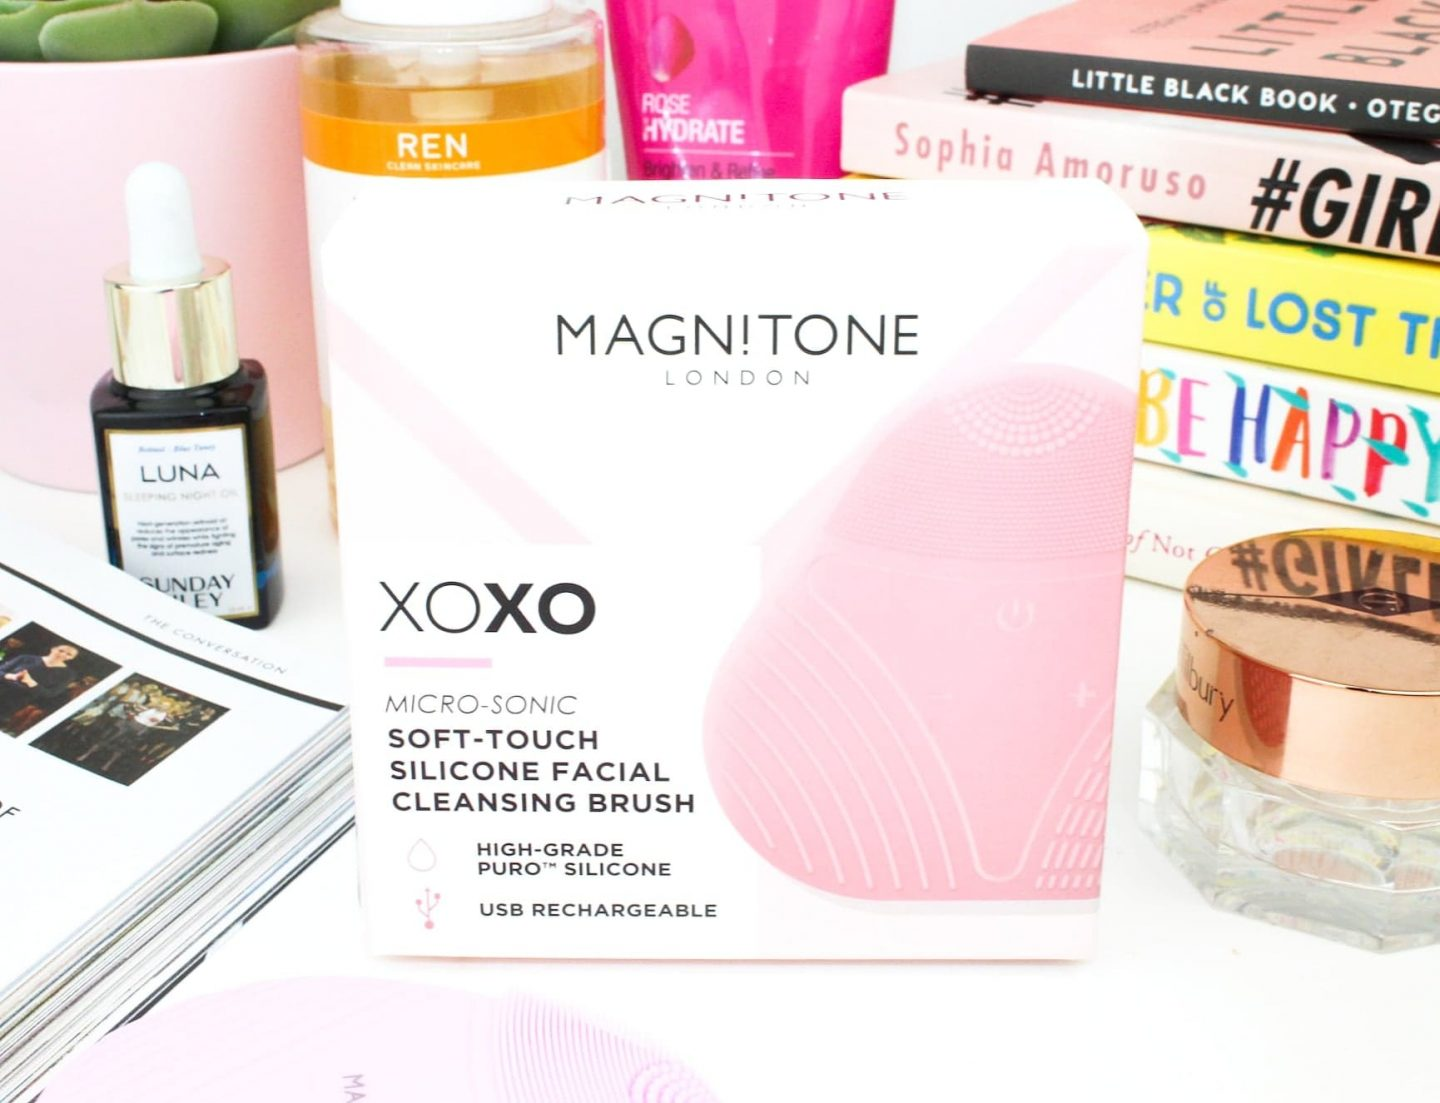 New Skincare | Magnitone London XOXO SoftTouch Silicone Cleansing Brush